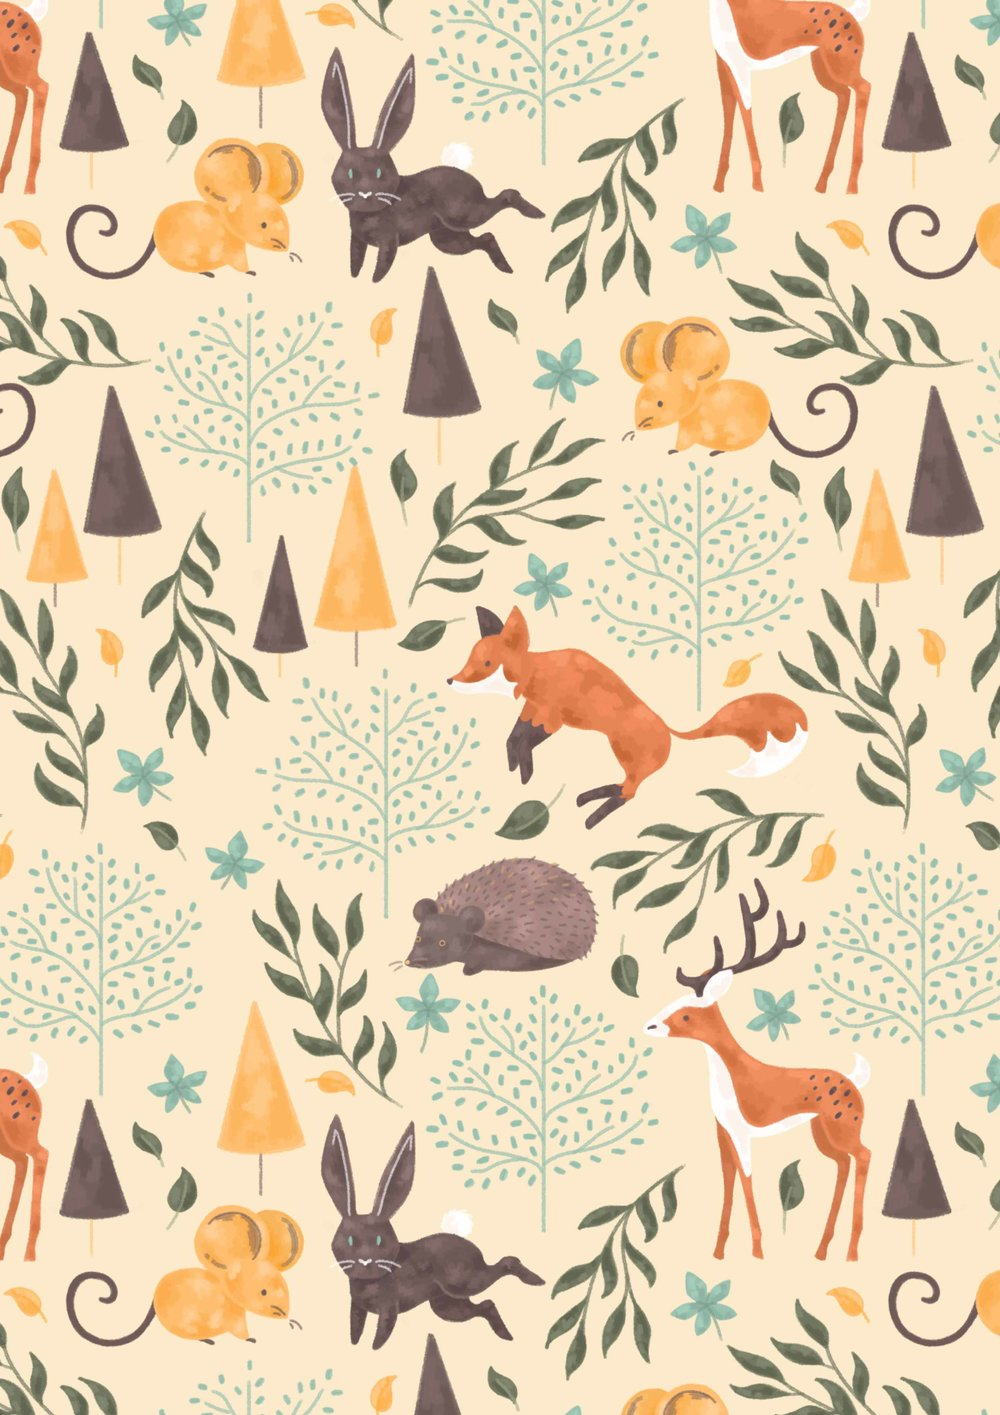 Illustrated pattern, woodland animals, fox, rabbits, deer, mouse, hedgehog.